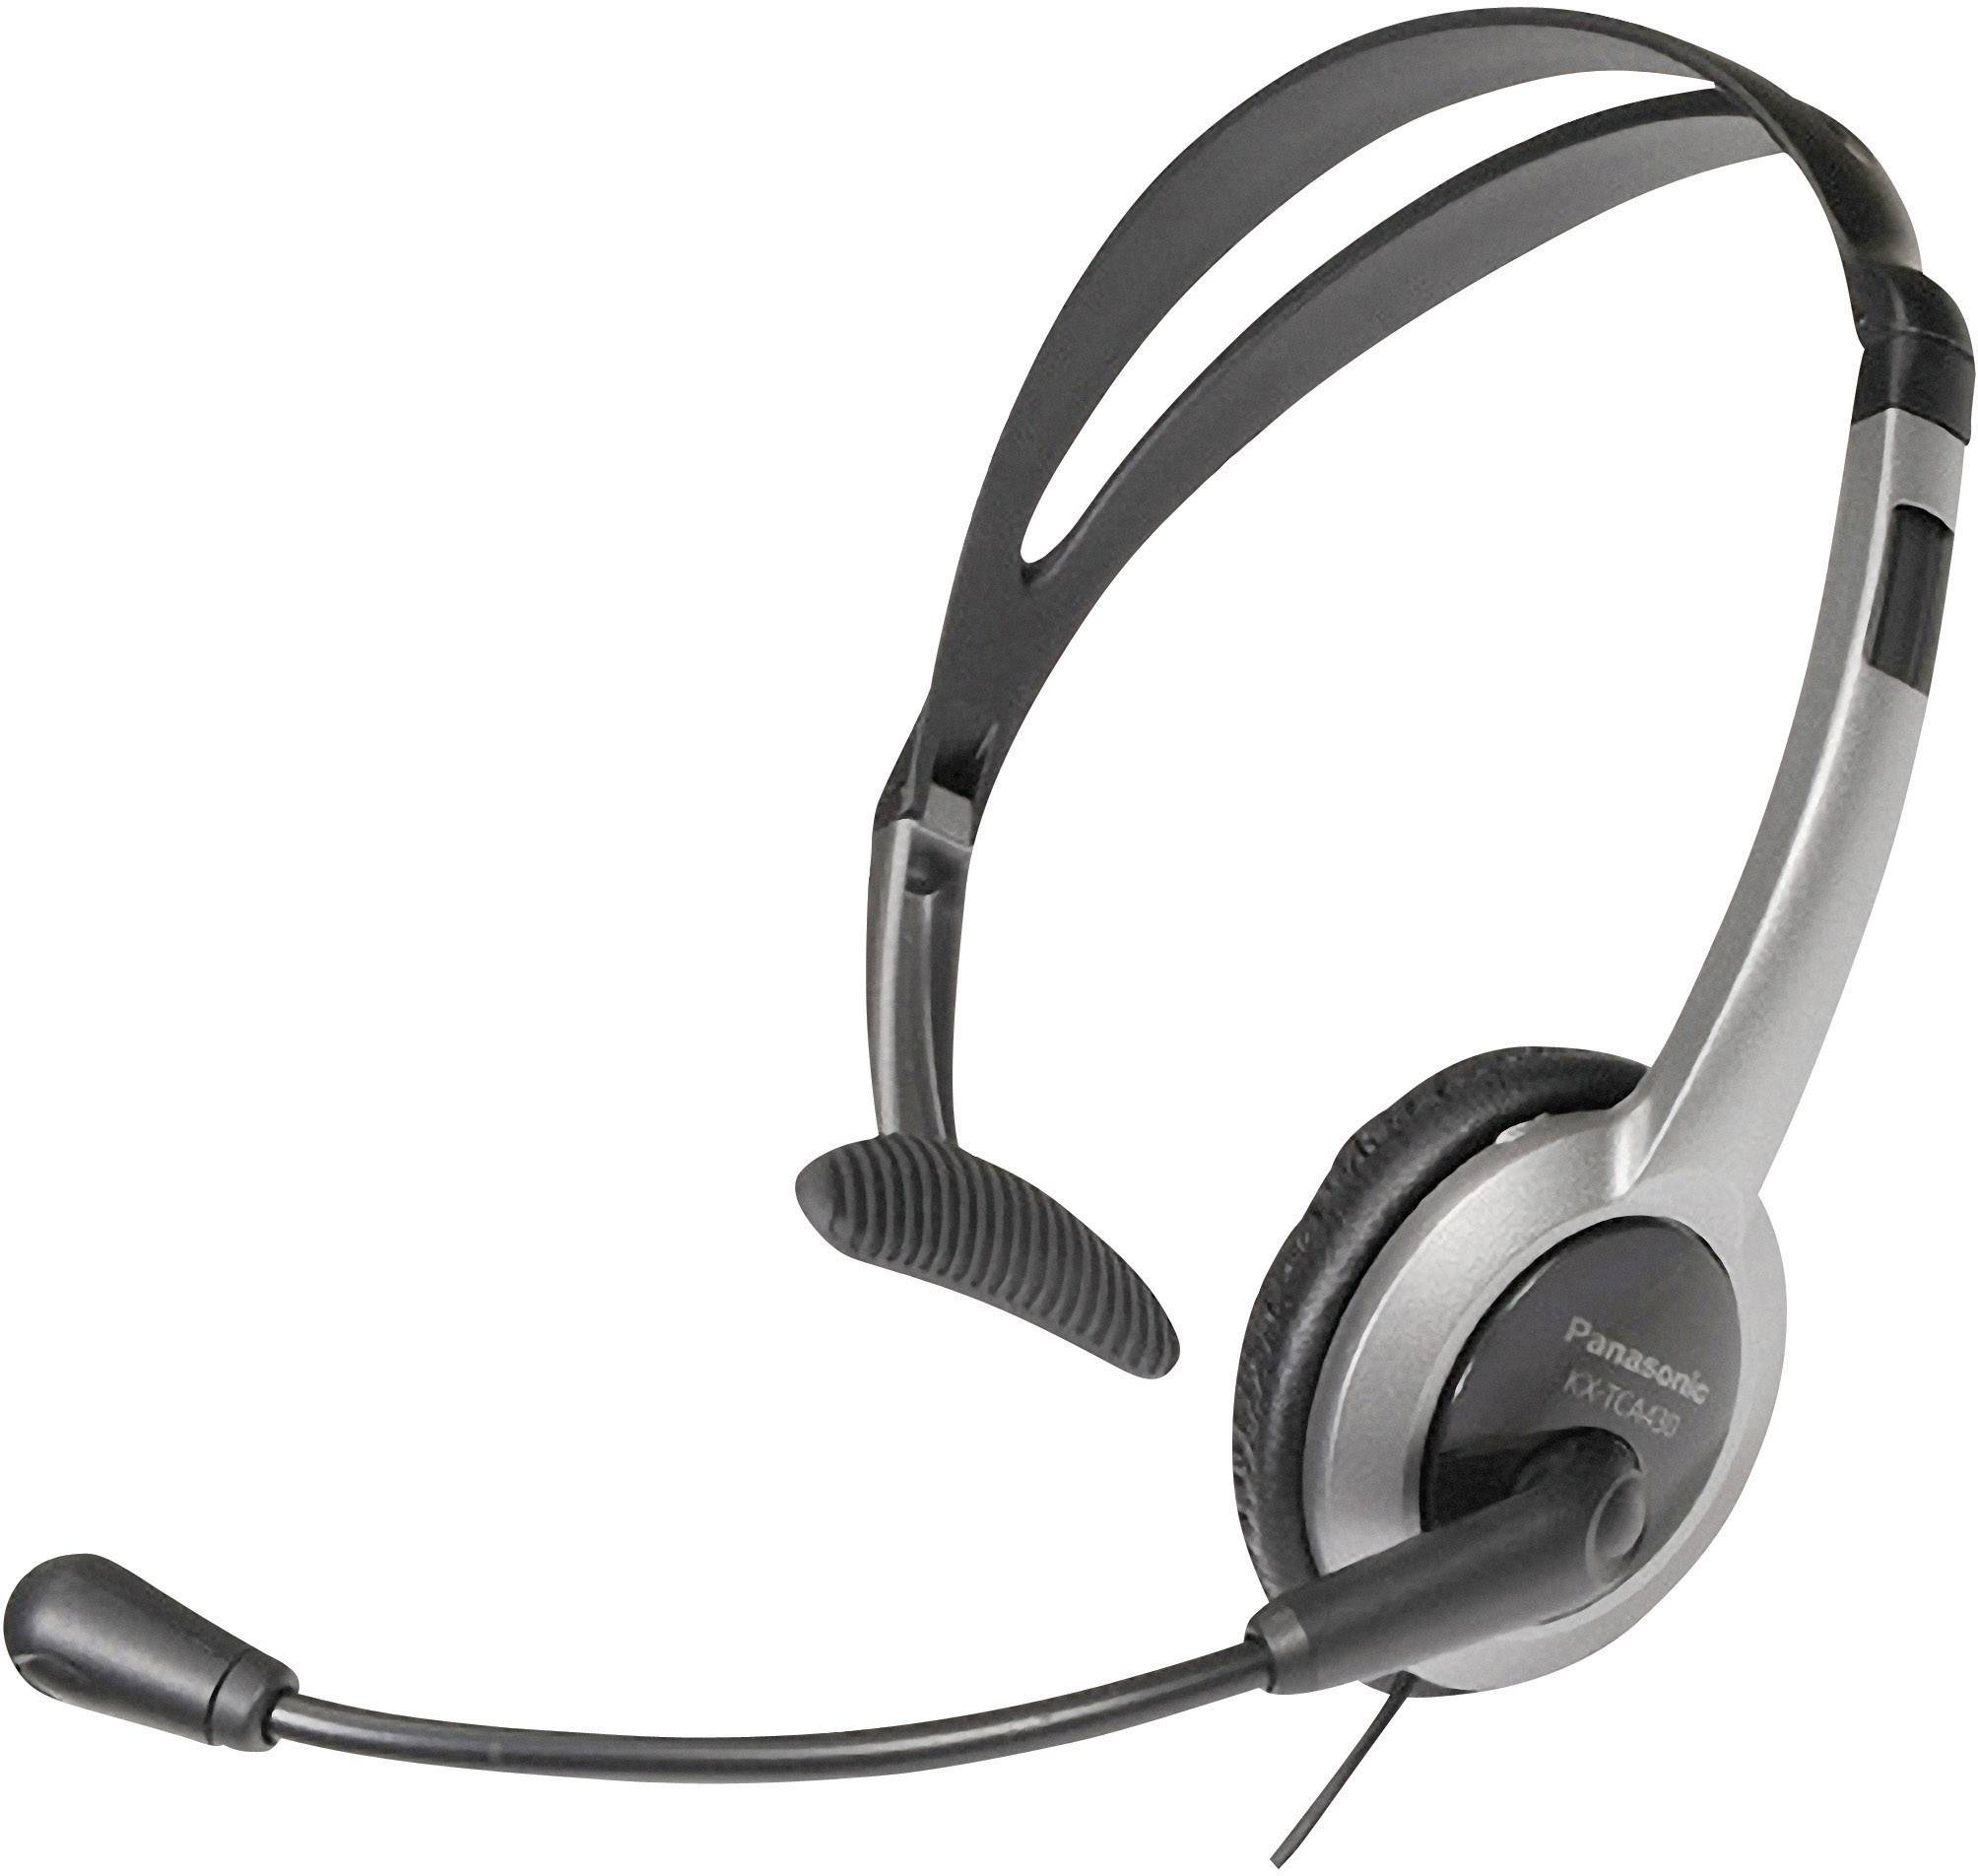 Call Center Headset with Microphone 2.5 mm Noise Cancelling Headset